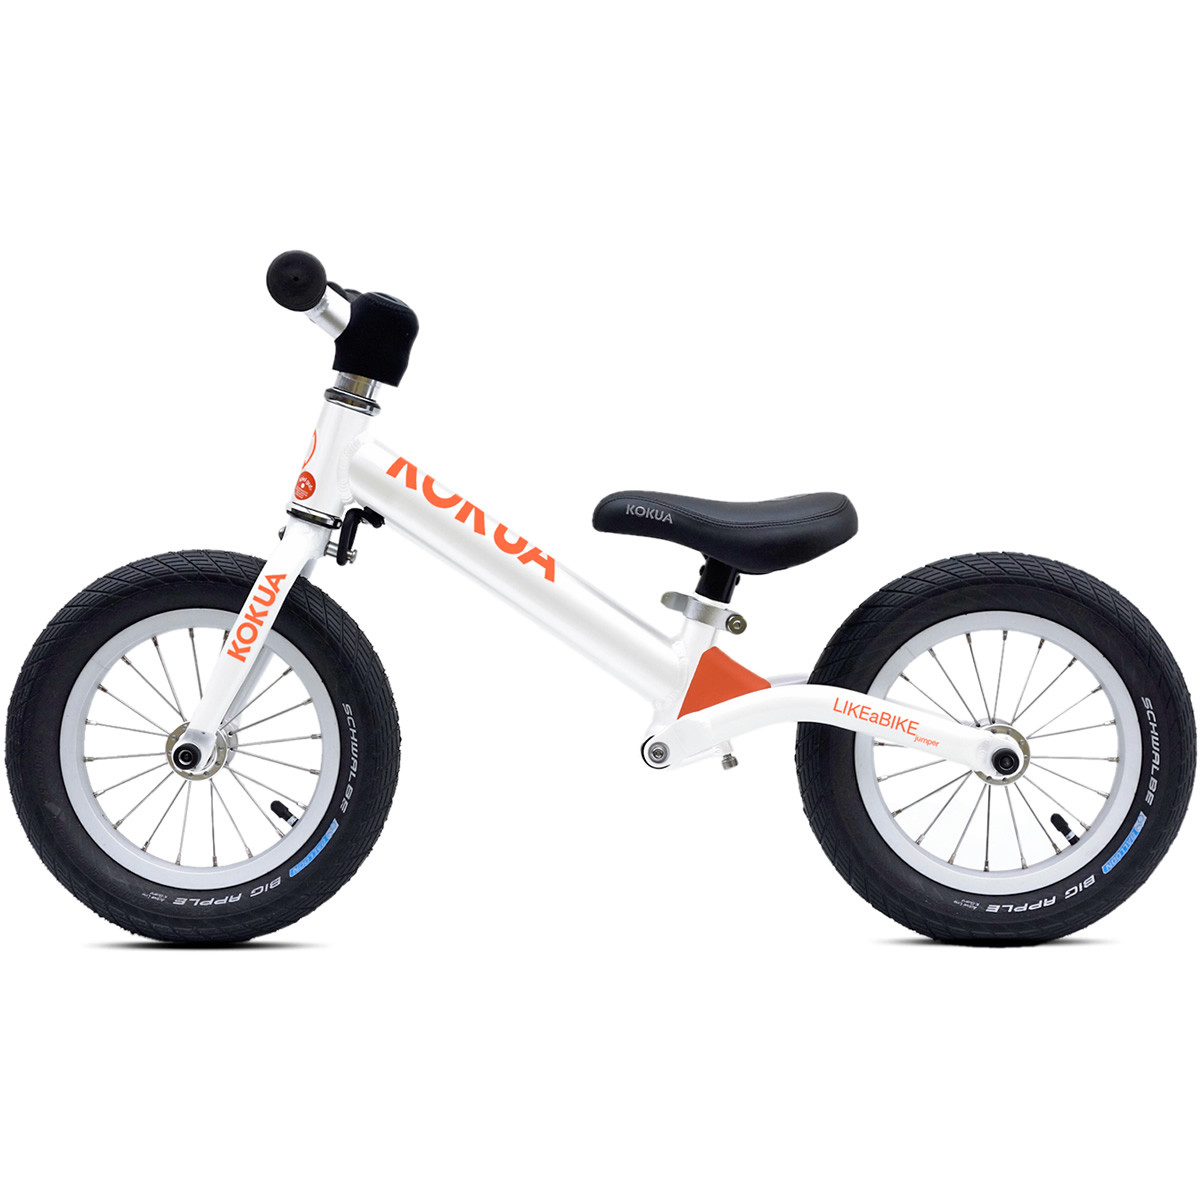 LikeaBike Jumper White Edition